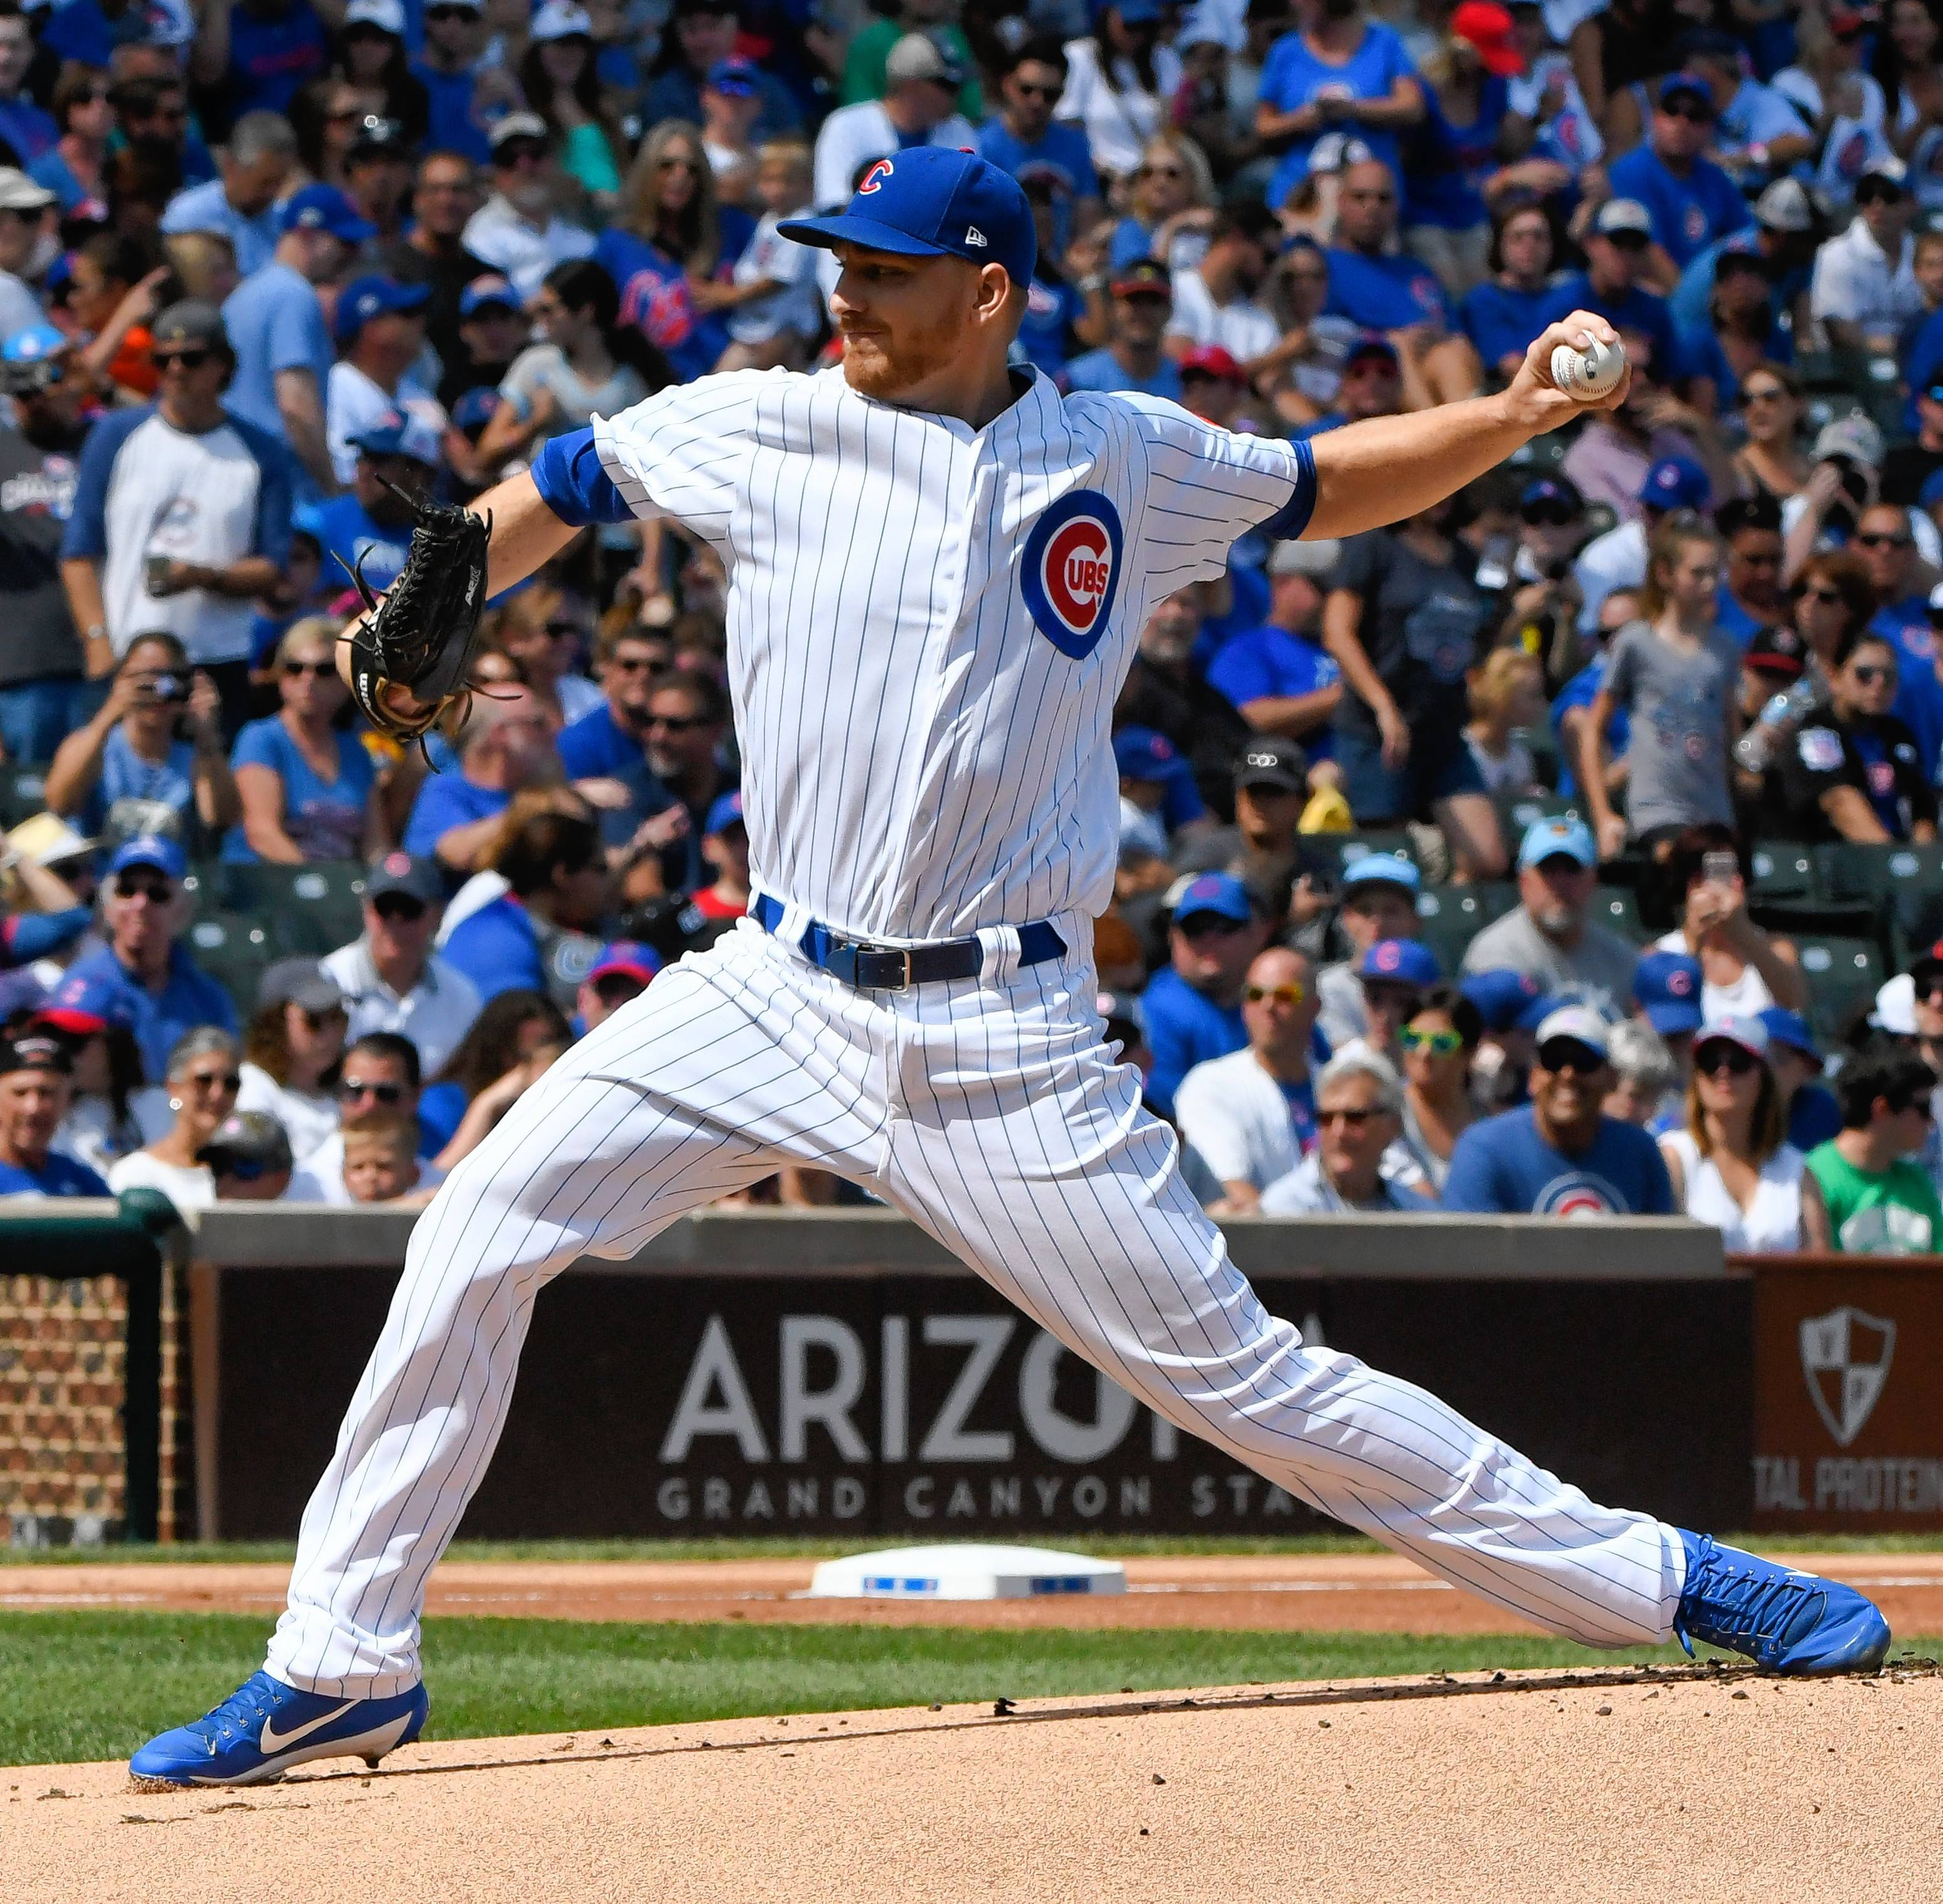 Not only did Cubs pitcher Mike Montgomery get the final out of Game 7 of last year's World Series, he's been one of manager Joe Maddon's most dependable arms this season, in both starting and relief roles.